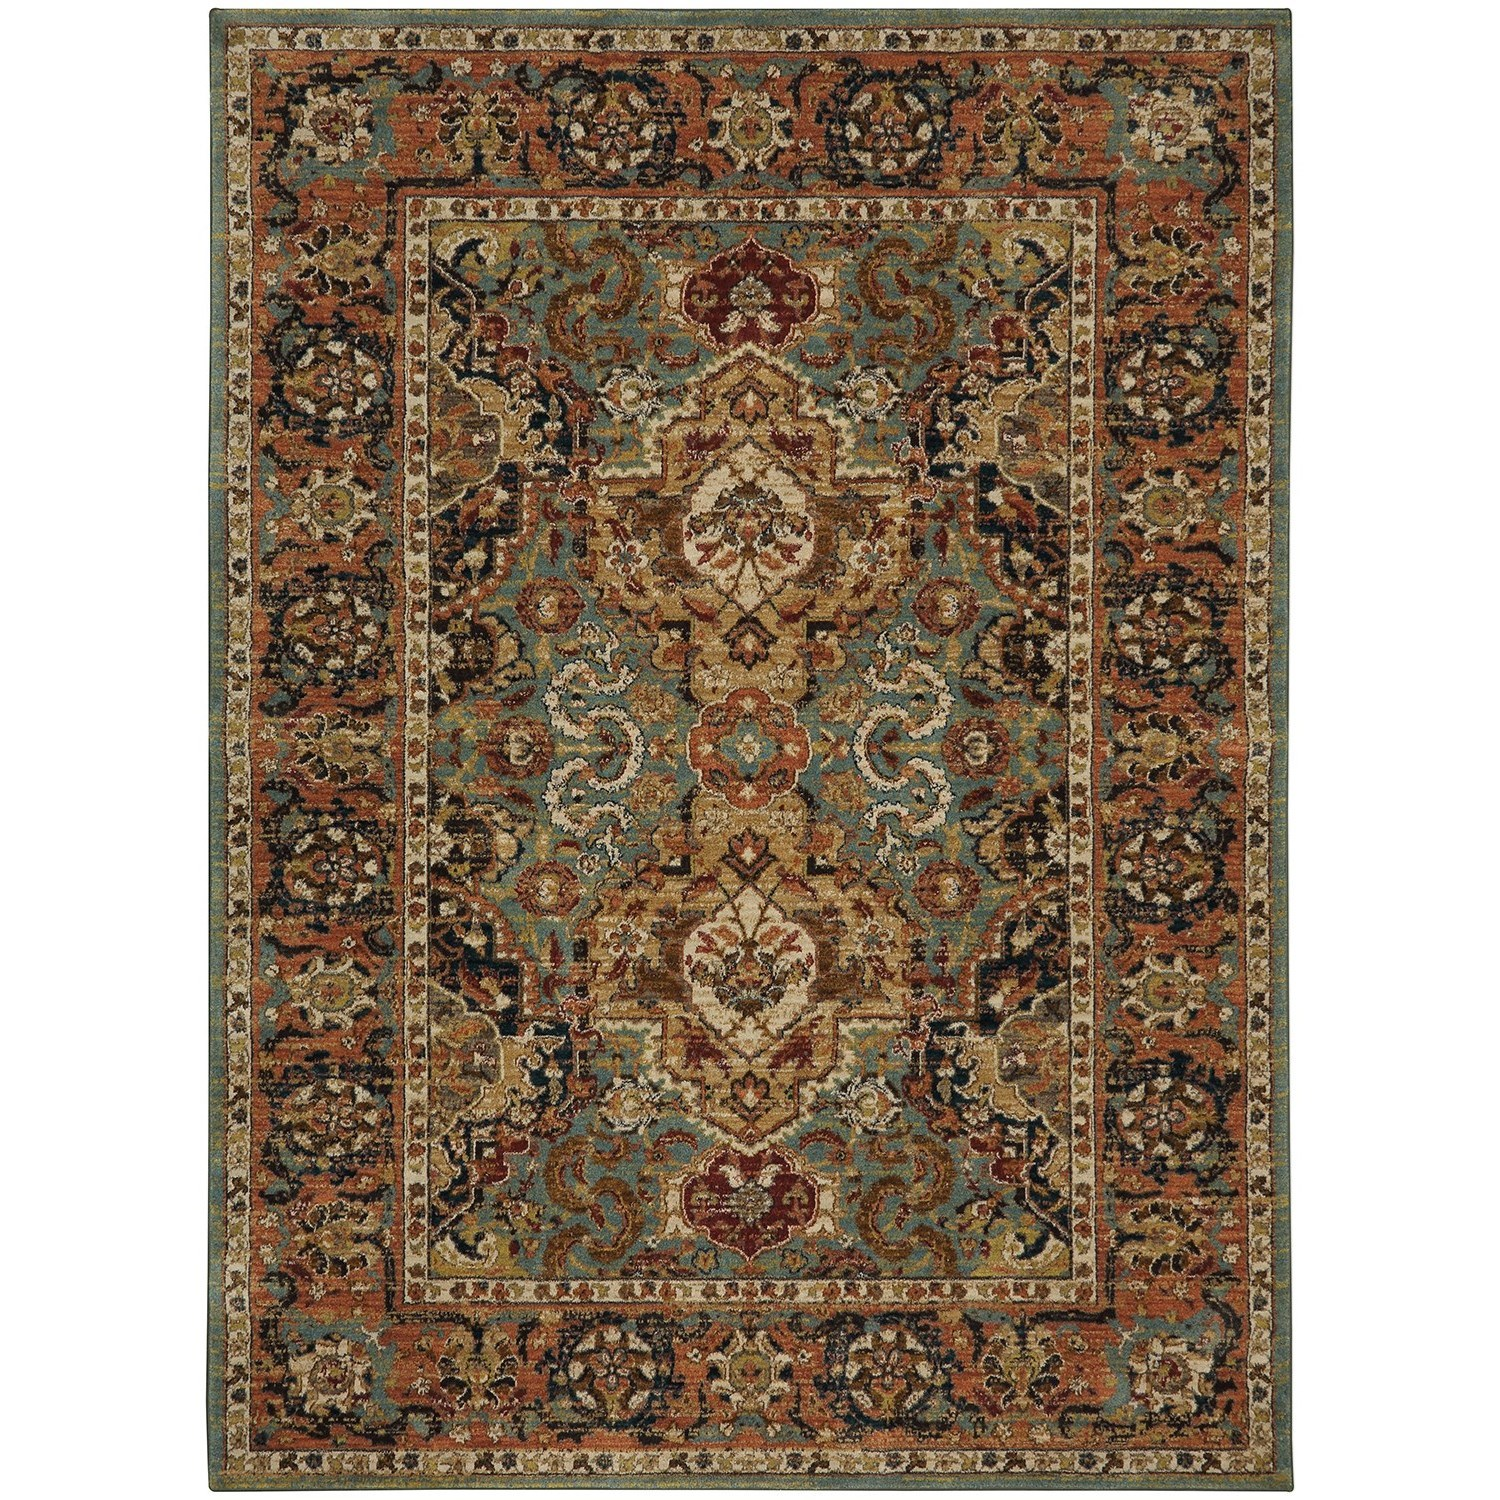 "Spice Market 9' 6""x12' 11"" Rectangle Ornamental Area Rug by Karastan Rugs at Darvin Furniture"